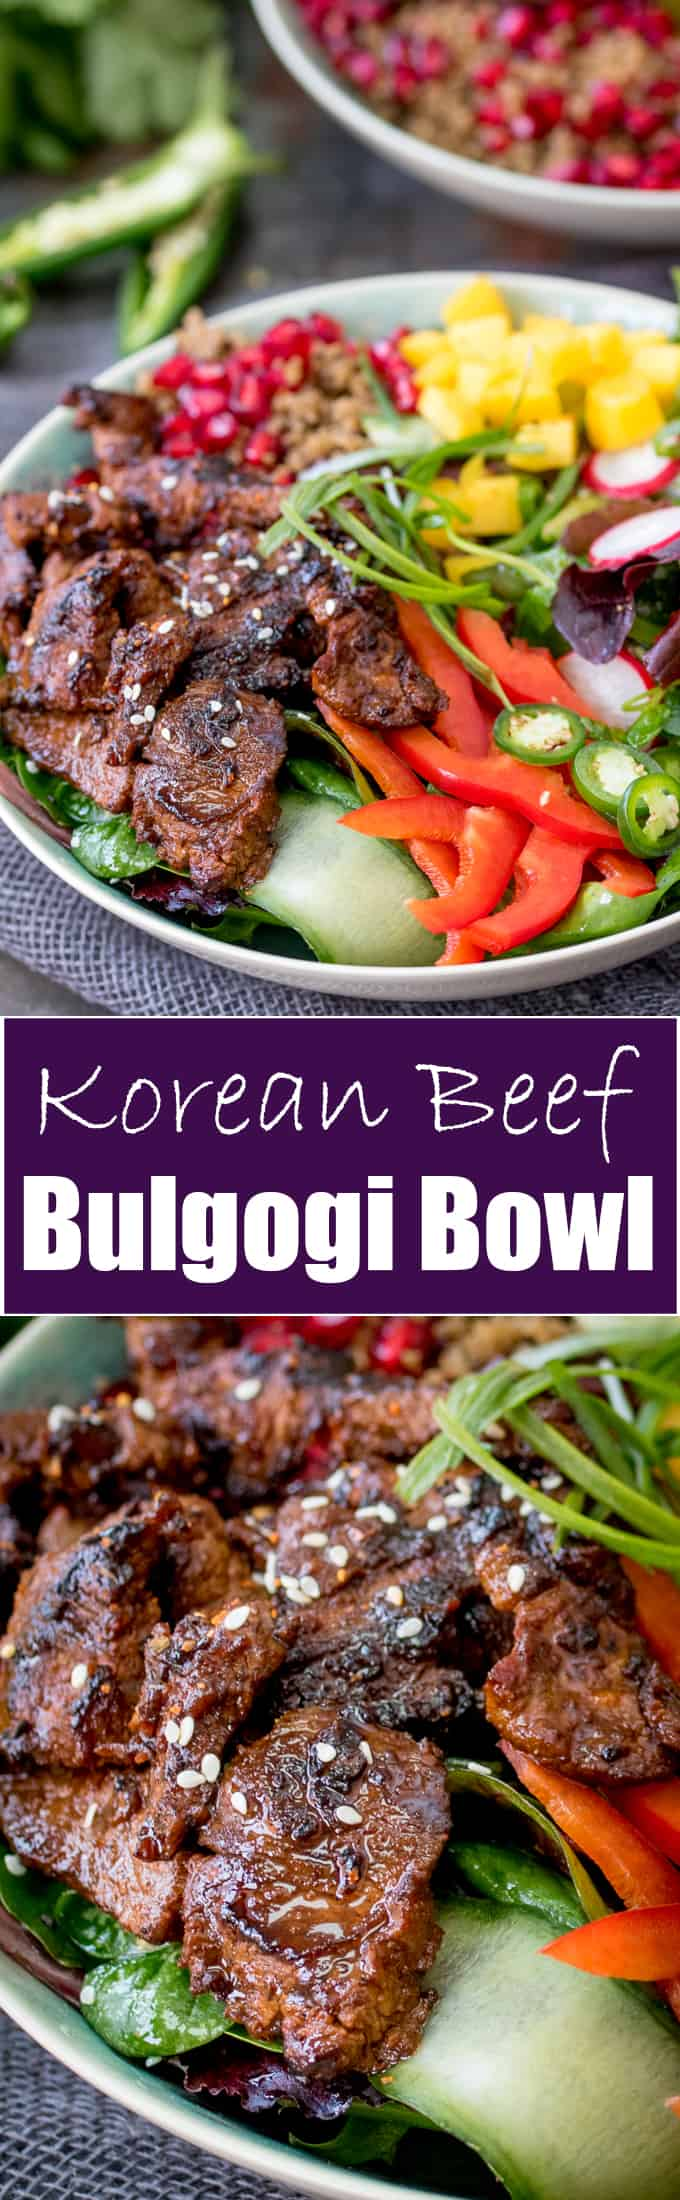 This Korean Beef Bulgogi Bowl is bursting with spicy flavour! Marinated, then grilled or fried and served with a vibrant, crunchy salad.